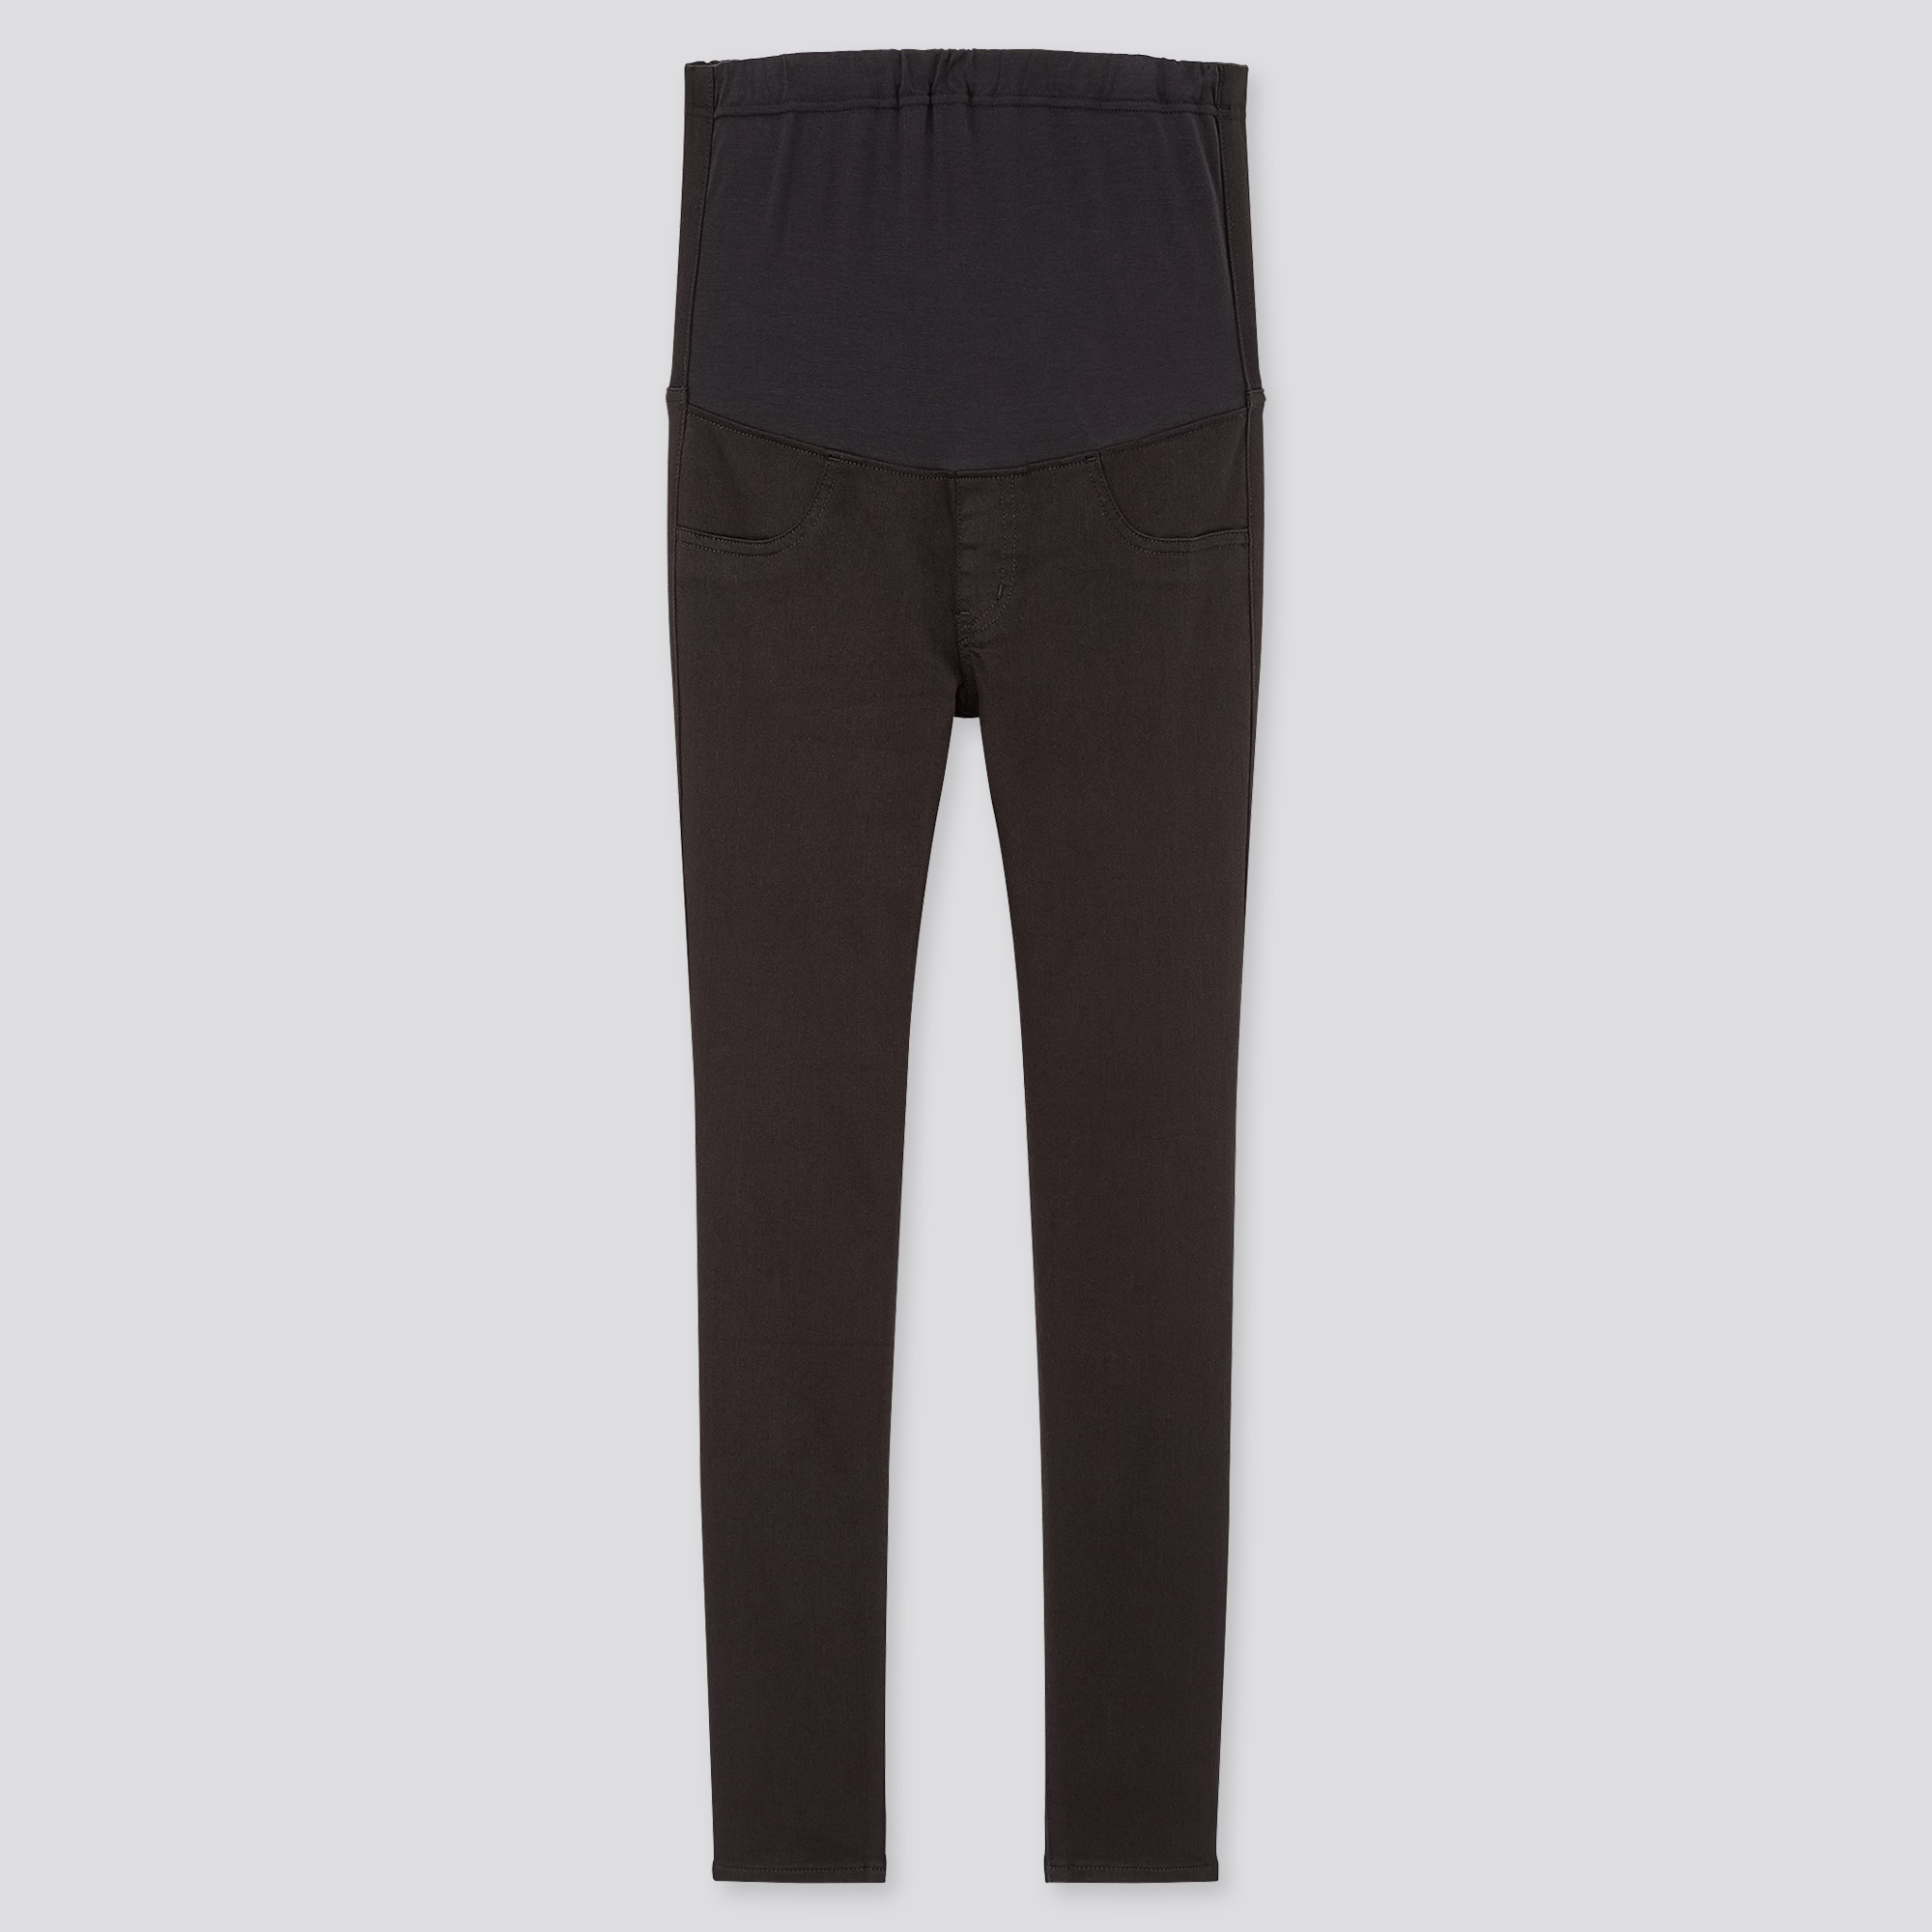 FREE P/&P Black//Grey Work Trousers Womens Clothing Maternity Trousers